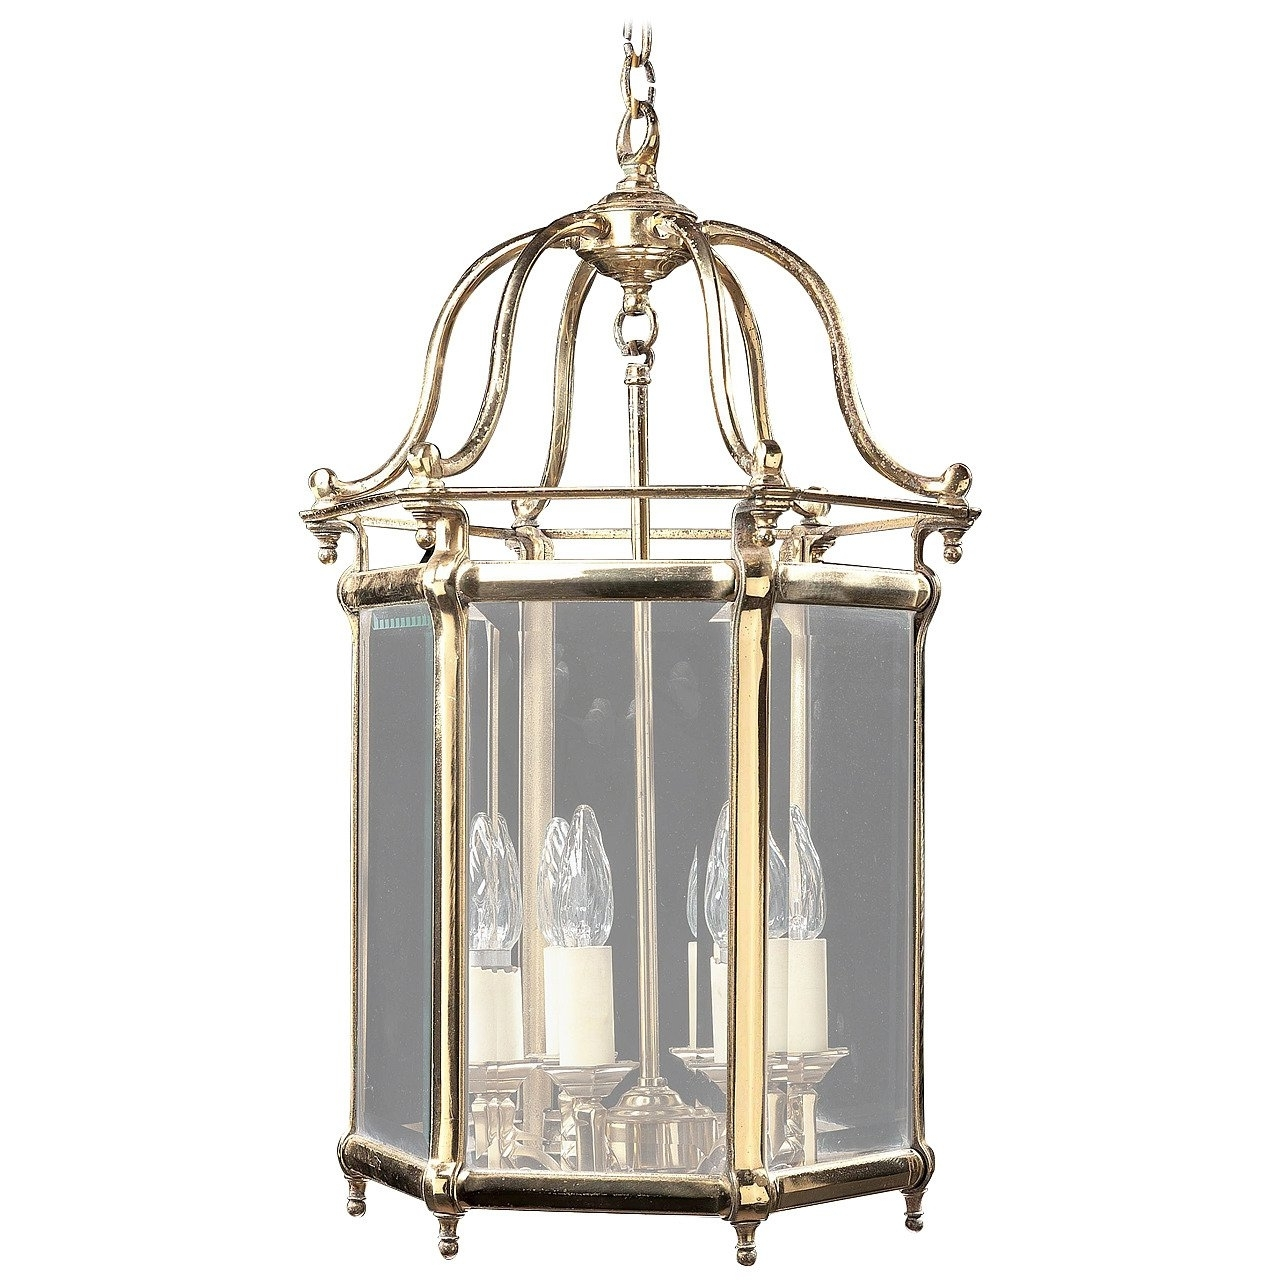 Preferred Brass Outdoor Lantern Porch Light Exterior Applique Sconce, 20Th Throughout Jumbo Outdoor Lanterns (View 19 of 20)